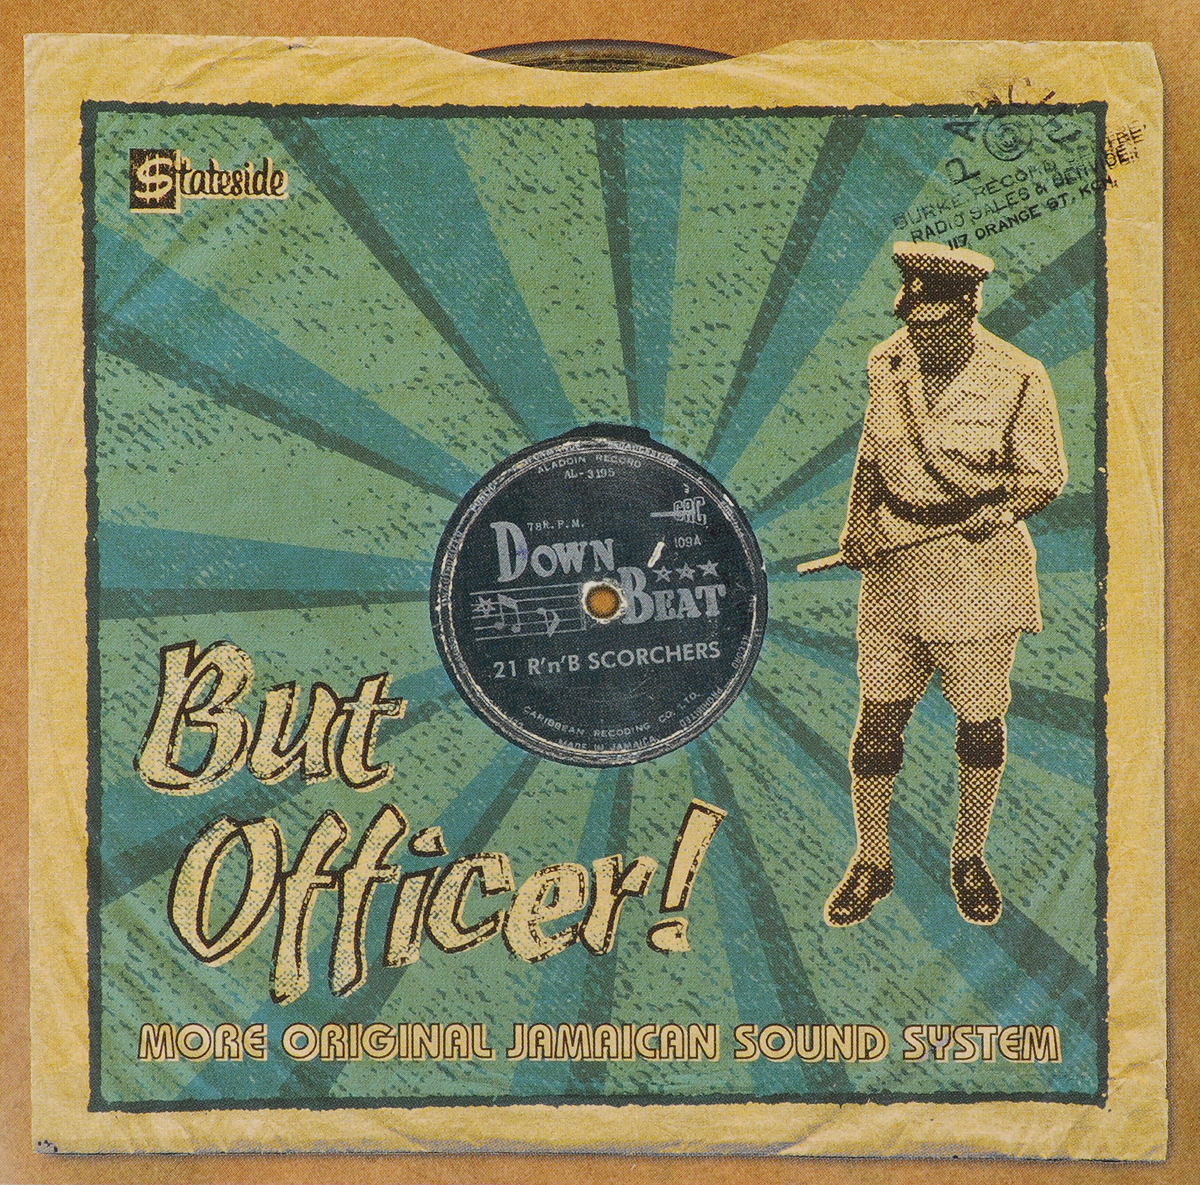 But Officer! More Original Jamaican Sound System джимми клифф деррик морган inner circle макс ромео эрик дональдсон джуниор байлз джеки эдвардс sound system the story of jamaican music 8 cd